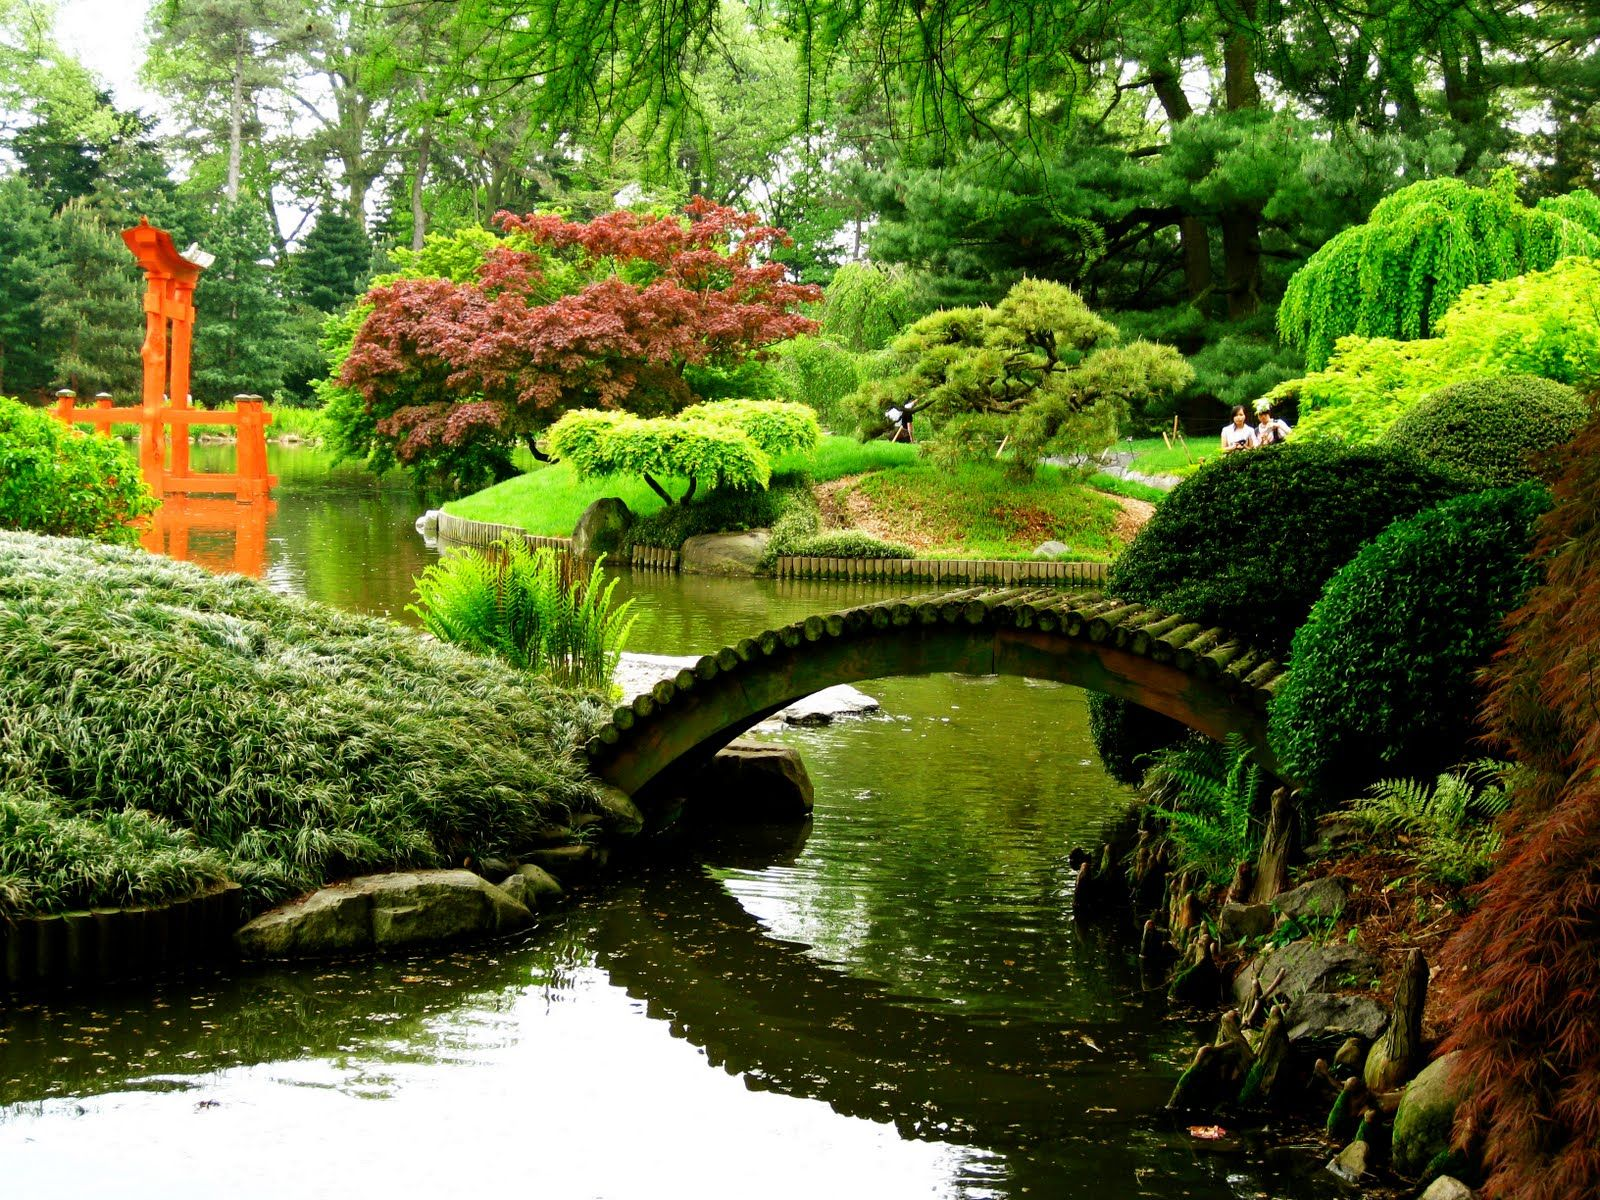 Oddly Enough The Most Beautiful Botanical Garden In New York Is Located In This Area Of